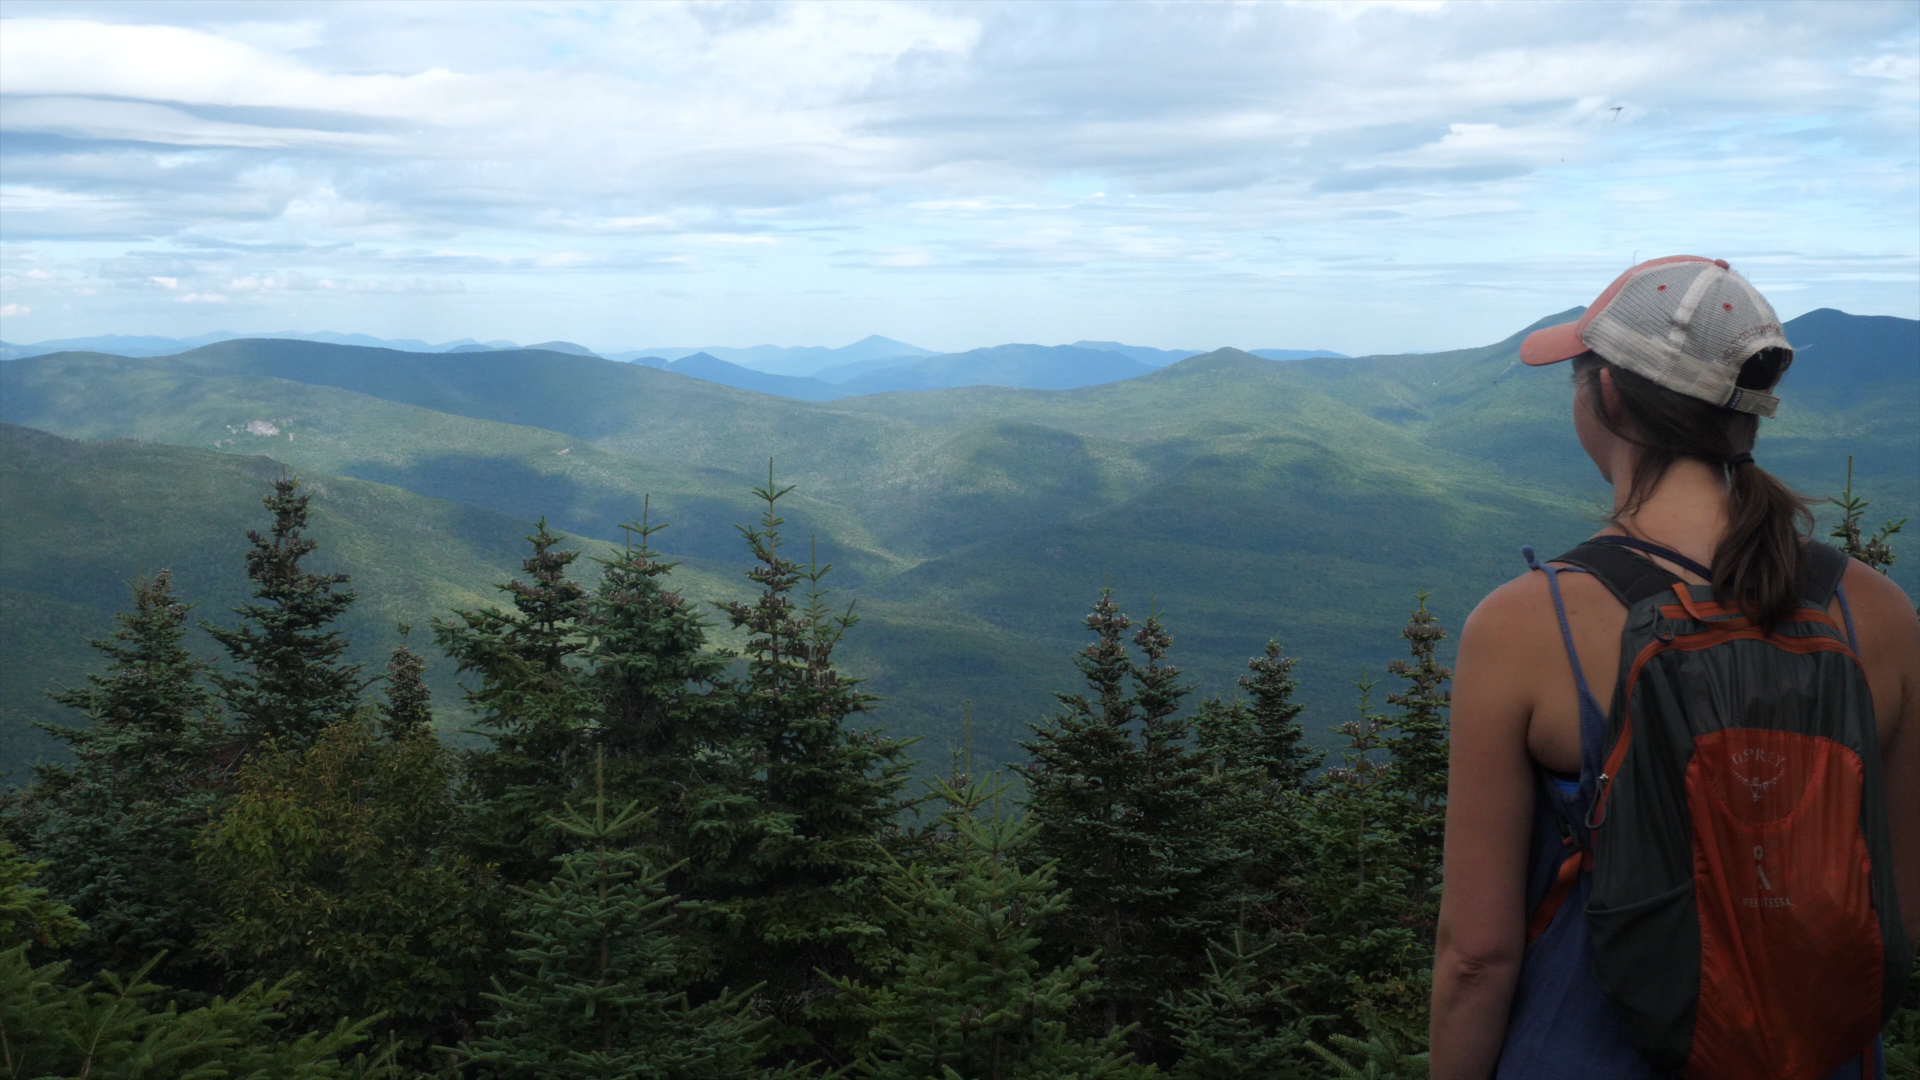 Enjoying the views from the summit of Mt. Tecumseh